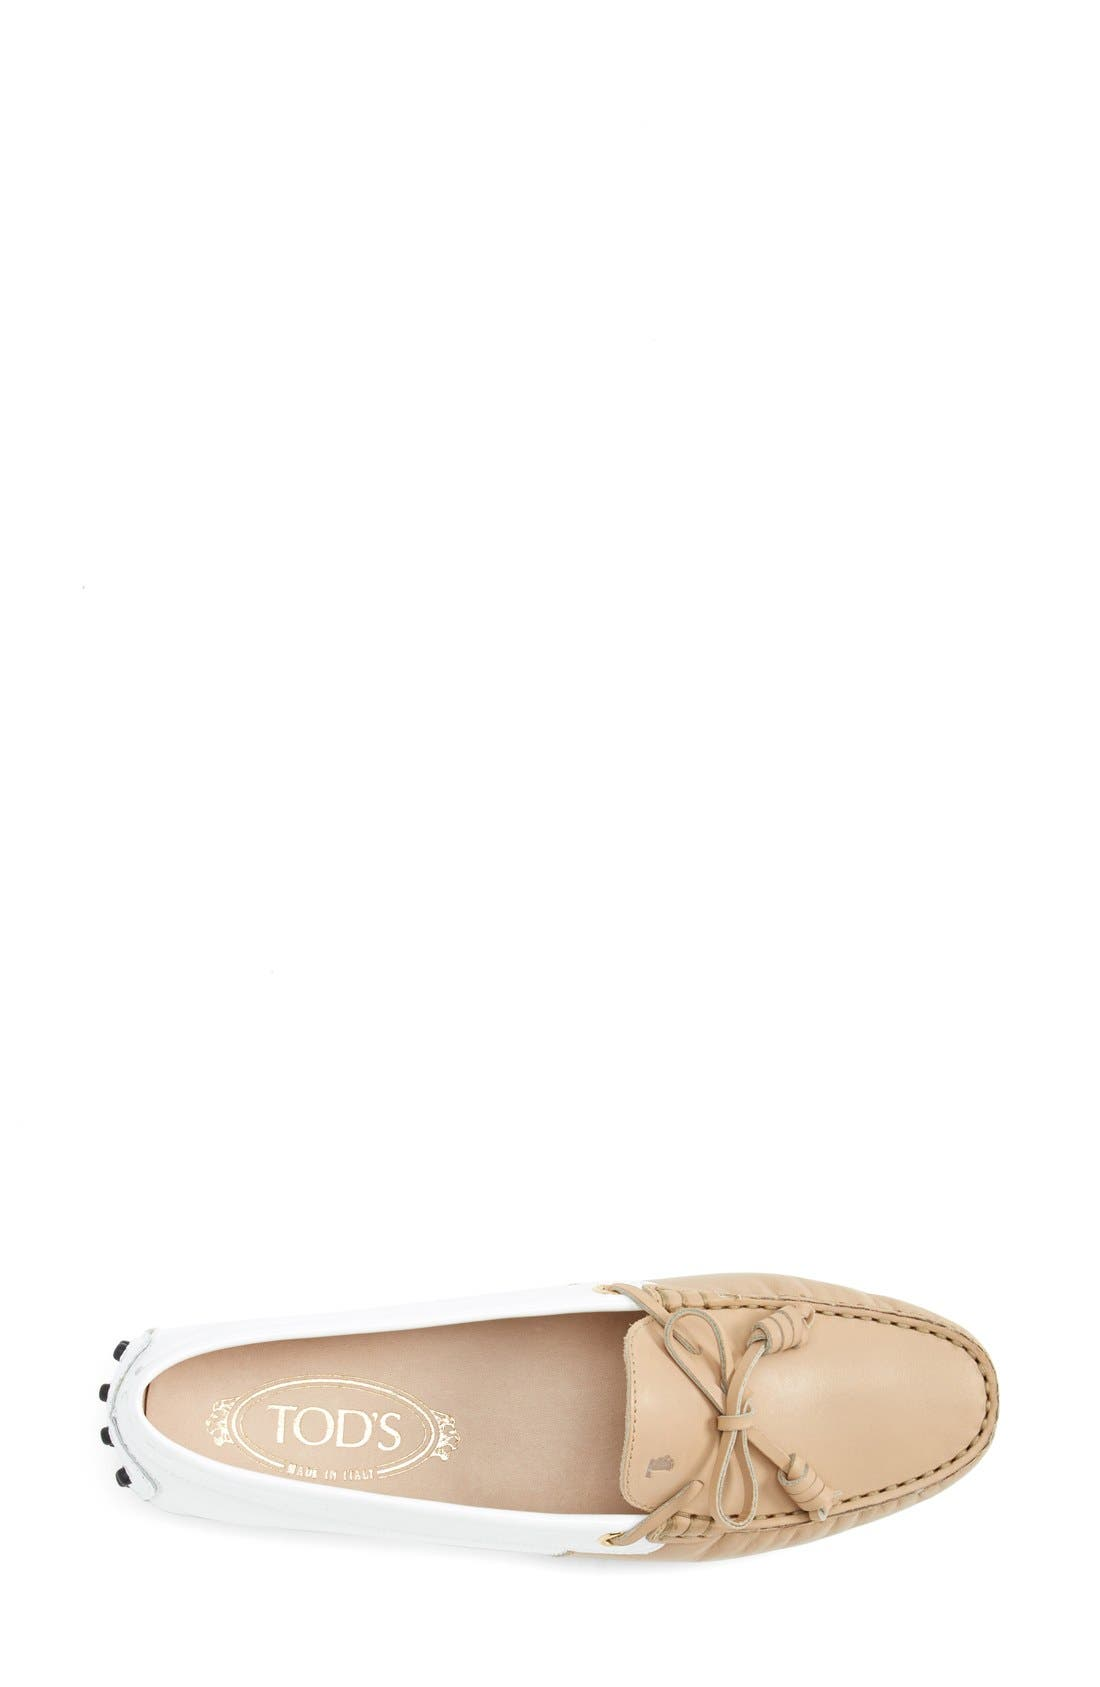 Alternate Image 3  - Tod's 'Gommini - Curly' Leather Driving Moccasin (Women)